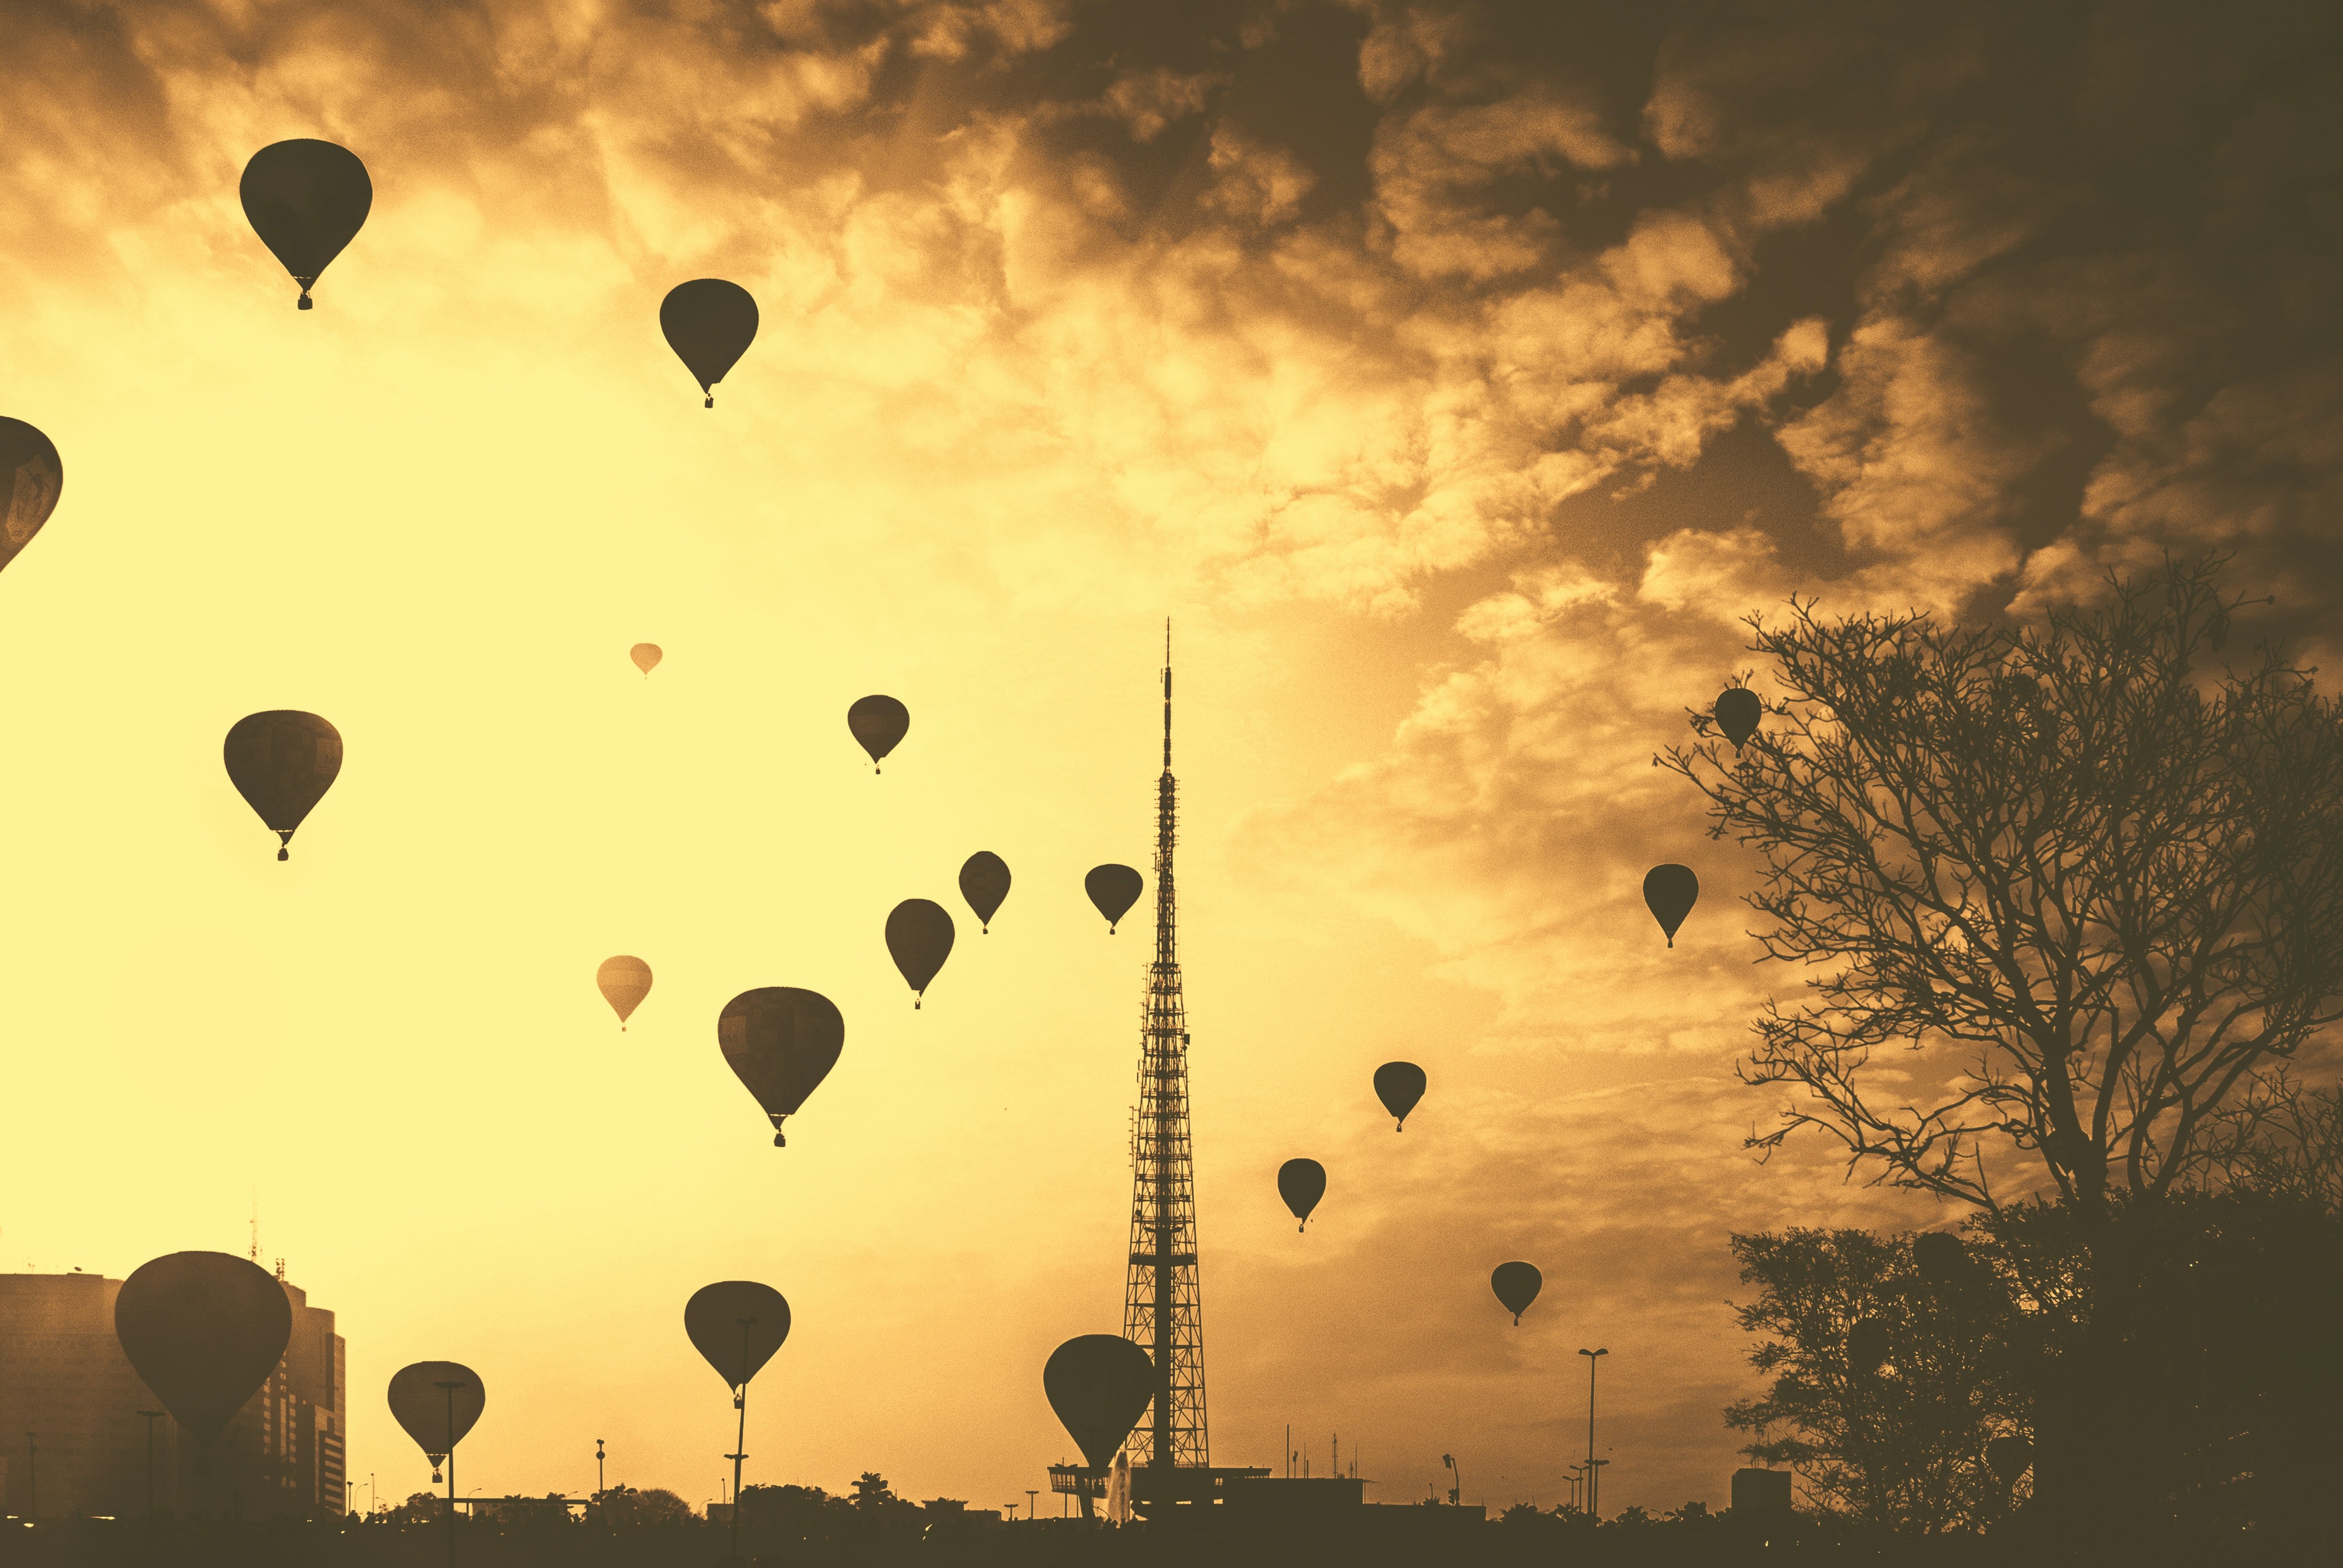 A large number of hot air balloon silhouettes in the orange sky over Brasília